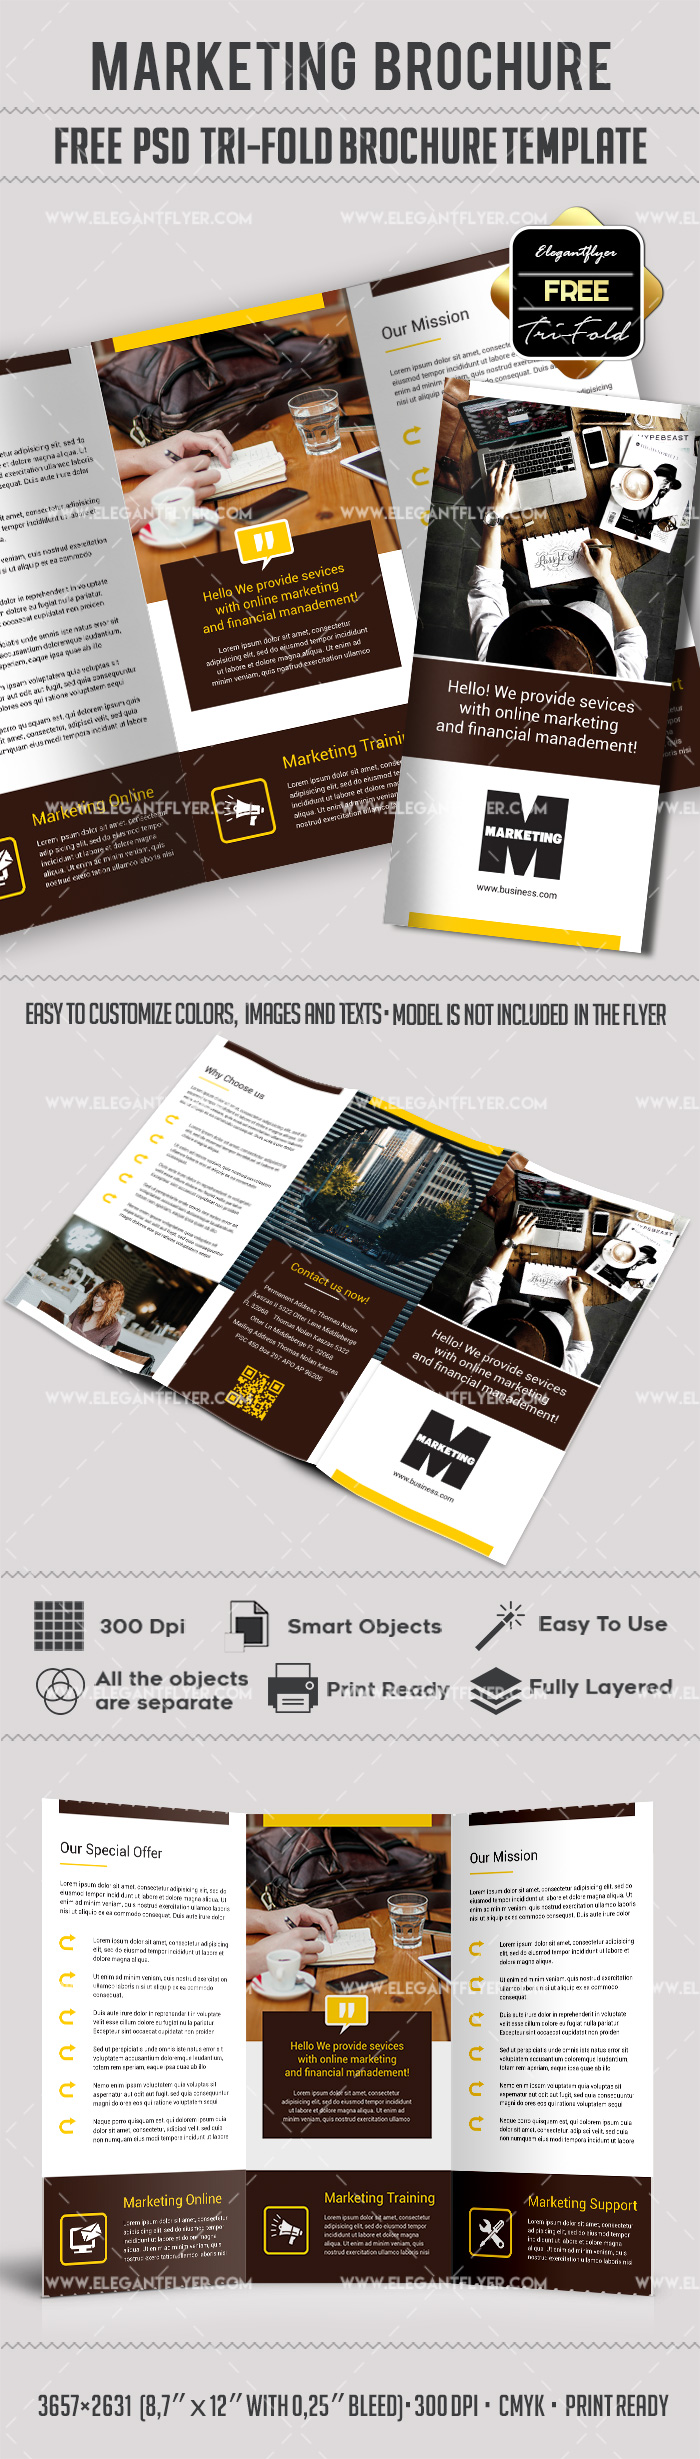 Marketing free tri fold psd brochure template by for Tri fold brochure templates free download